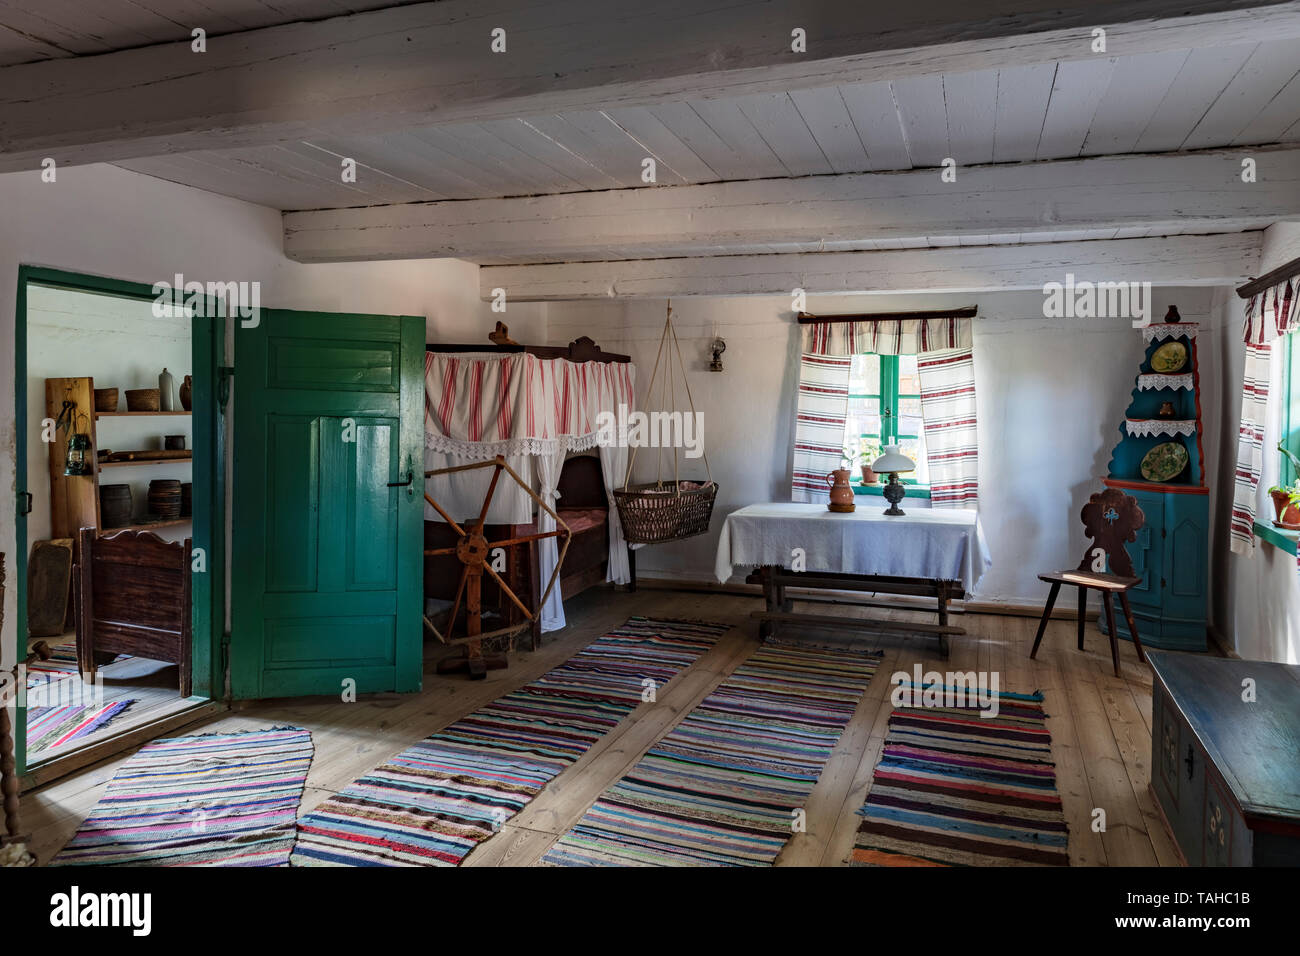 Museum of Folk Architecture in Olsztynek, the interior of a wooden hut,  Poland - Stock Image